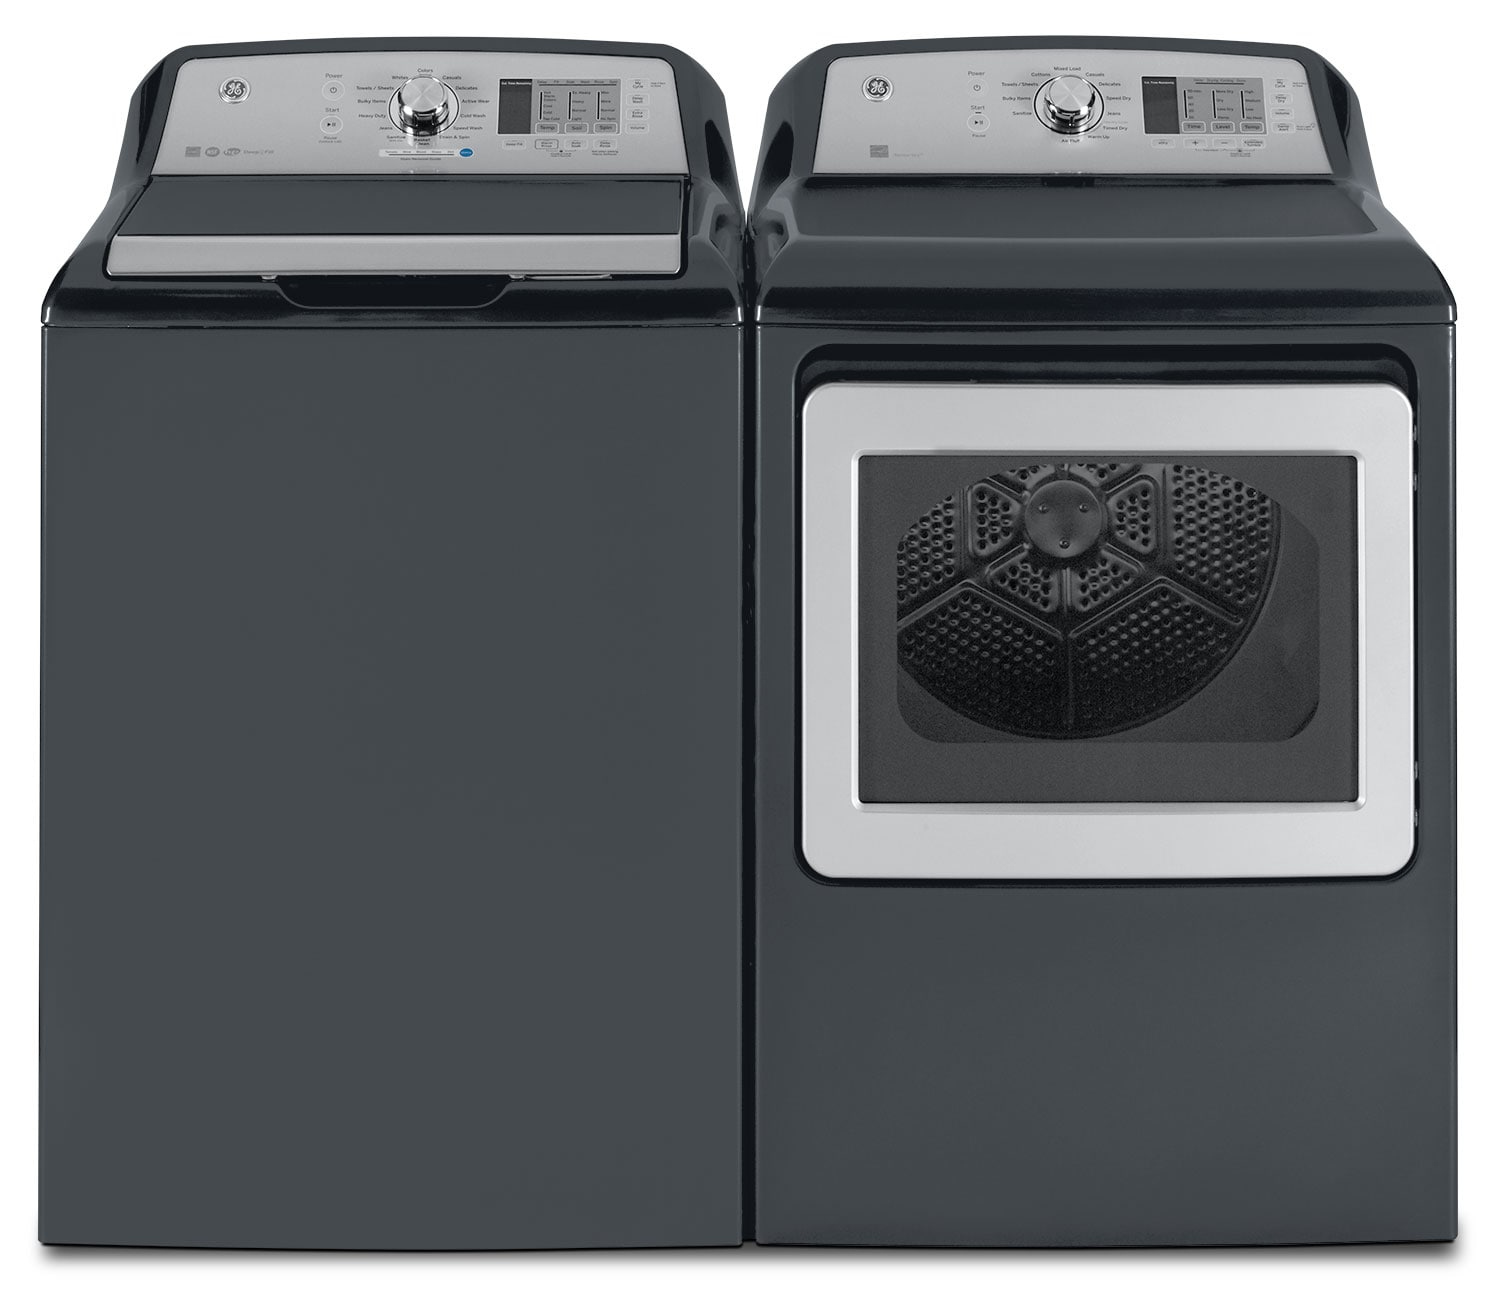 The best top load washer and dryer combo 2015 - Ft Top Load Washer And 7 4 Cu Ft